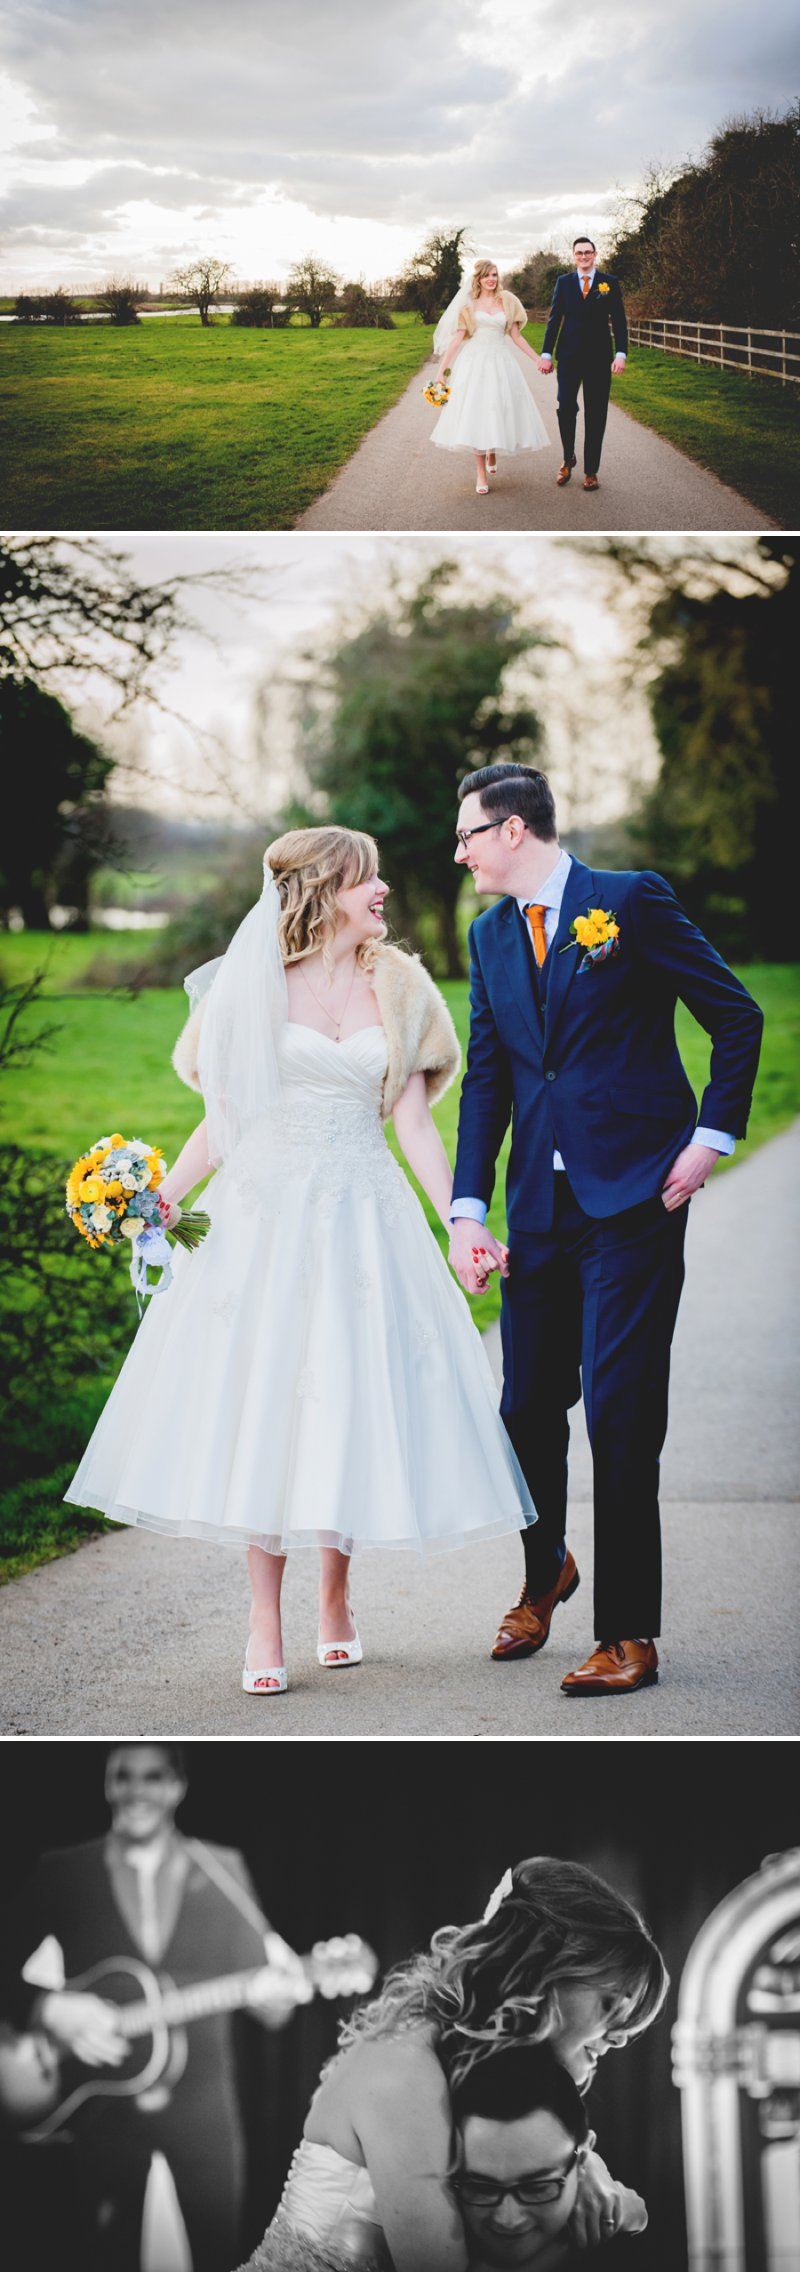 A 50s Inspired Wedding At Burton Joyce Village Hall With Yellow And Grey Colour Accents And Bride In A Tea Length Gown By Sincerity Bridal With Groom In Reiss And Bridesmaids In Butterfly Print Dresses 11